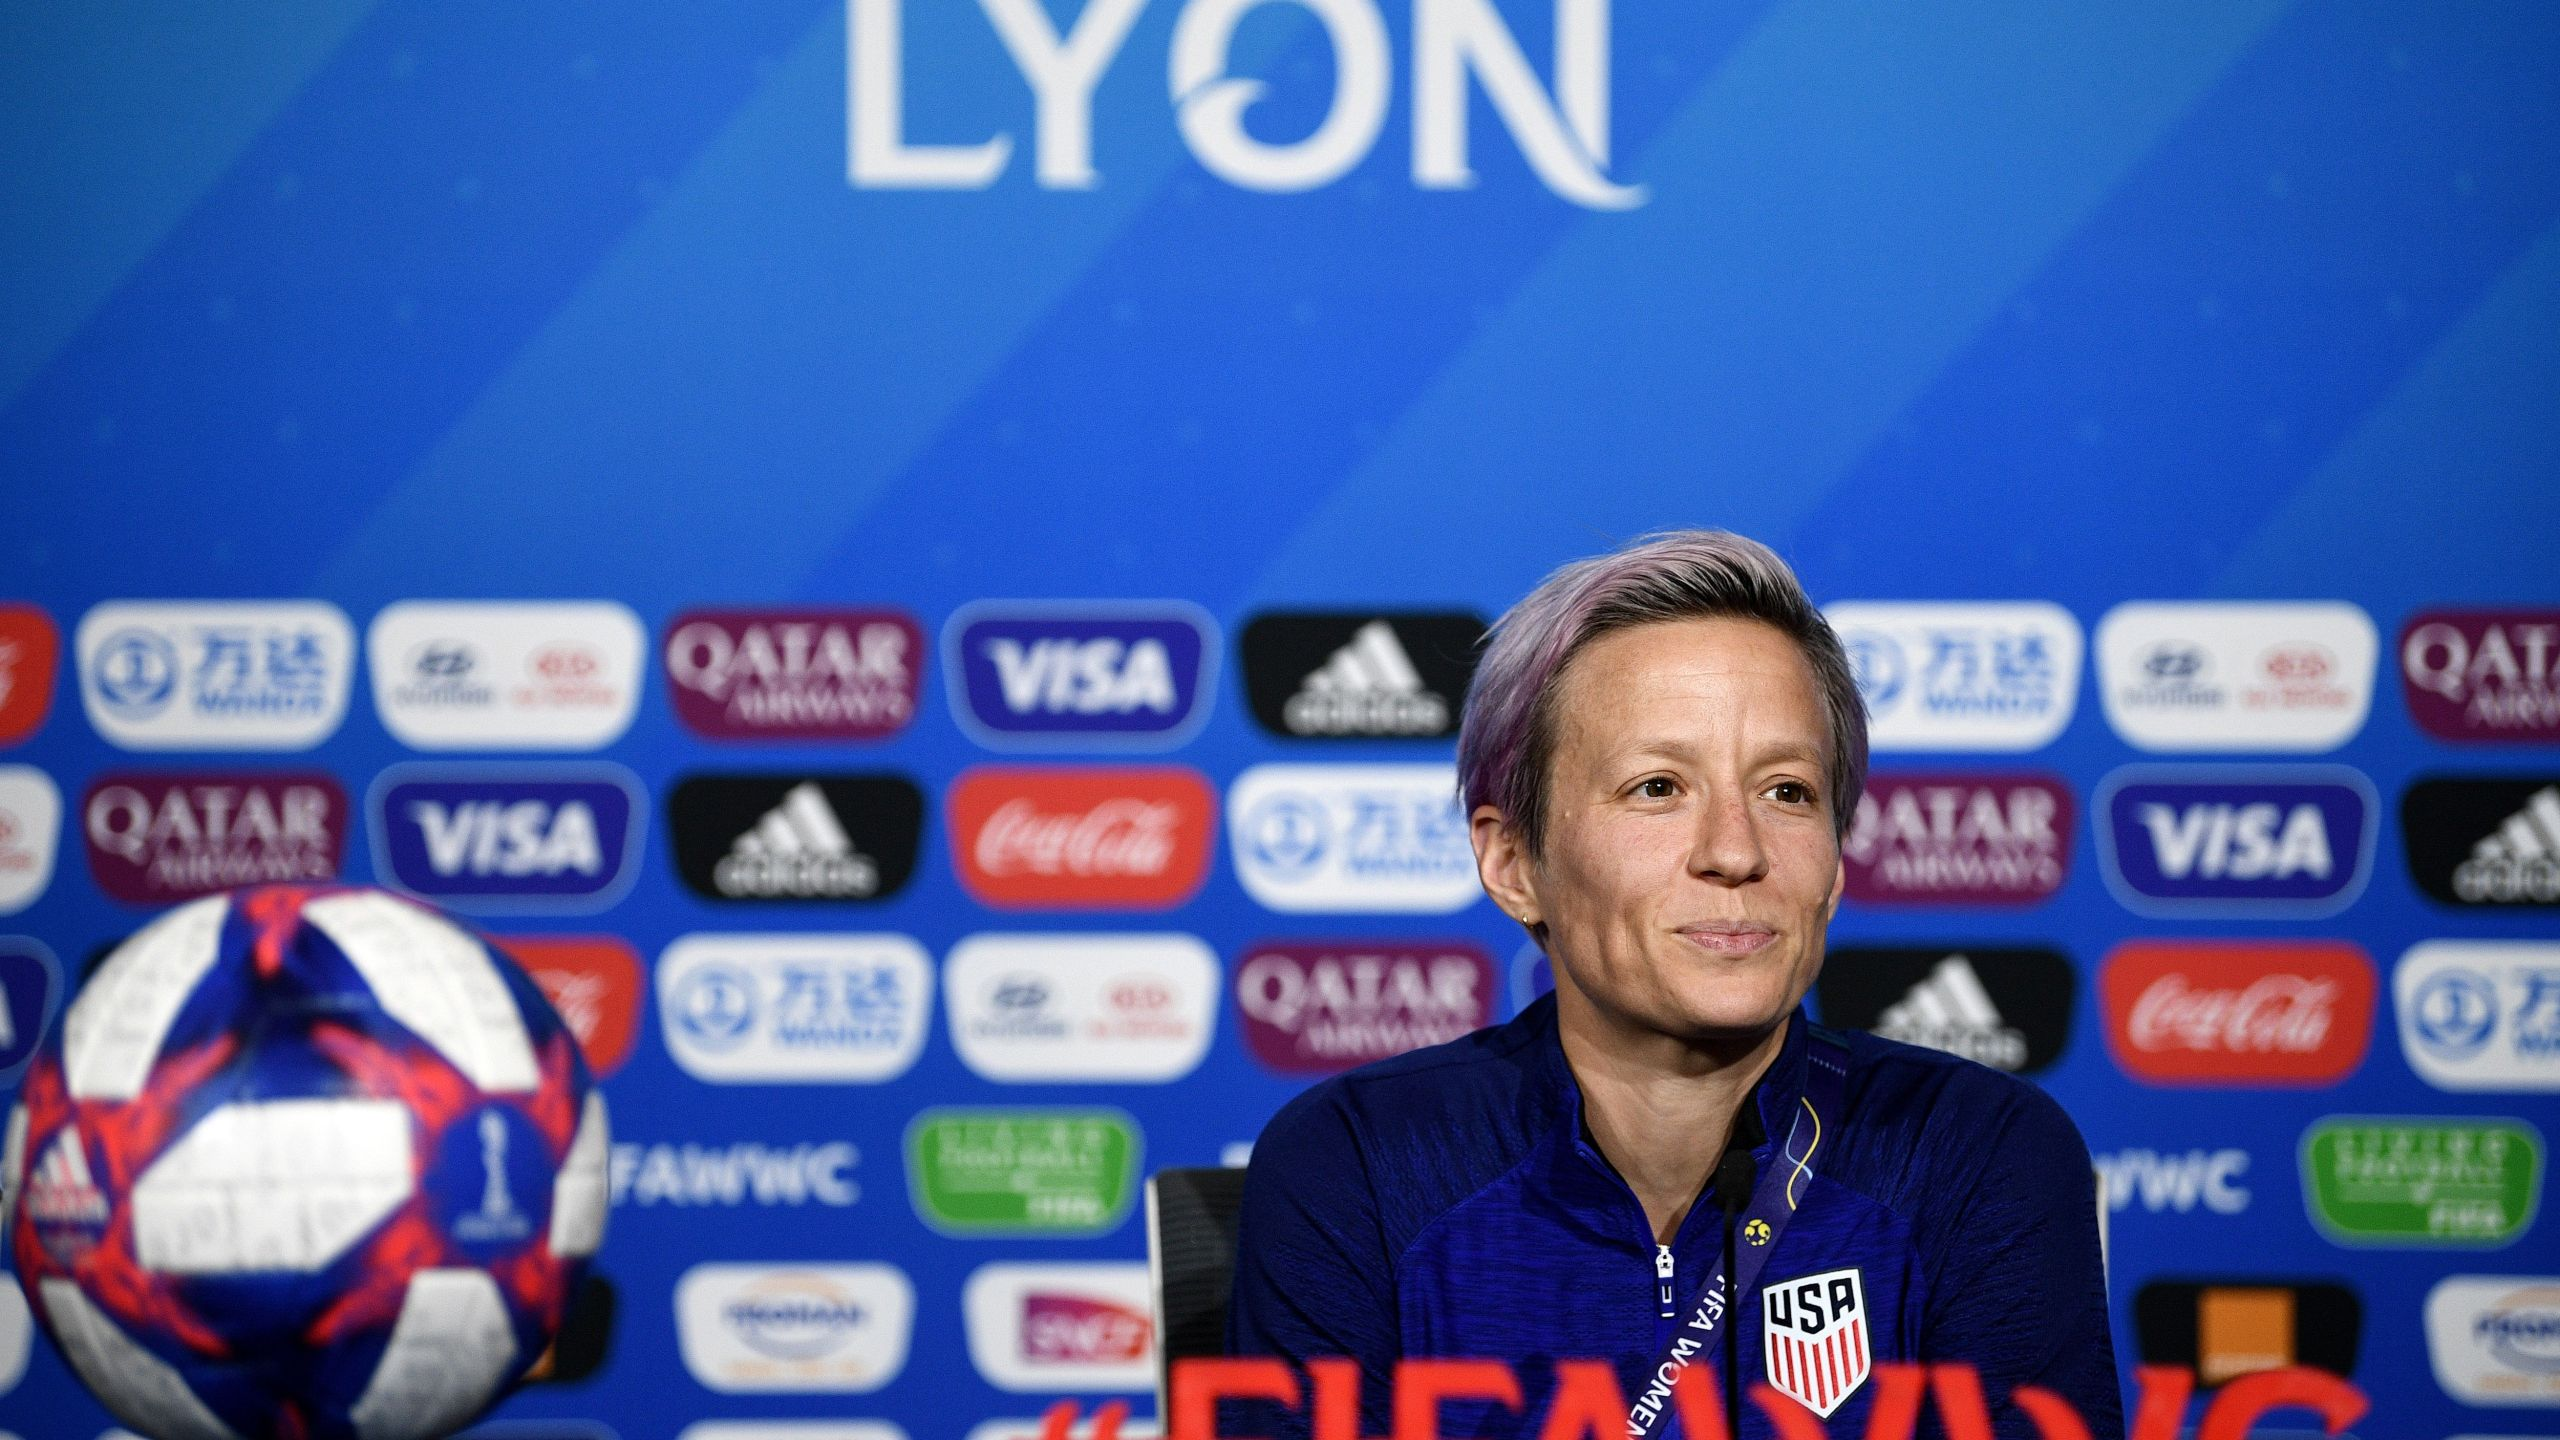 U.S. captain Megan Rapinoe gives a press conference at the Groupama stadium in Decines-Charpieu on July 6, 2019, during the France 2019 football Women's World Cup. (Credit: FRANCK FIFE/AFP/Getty Images)